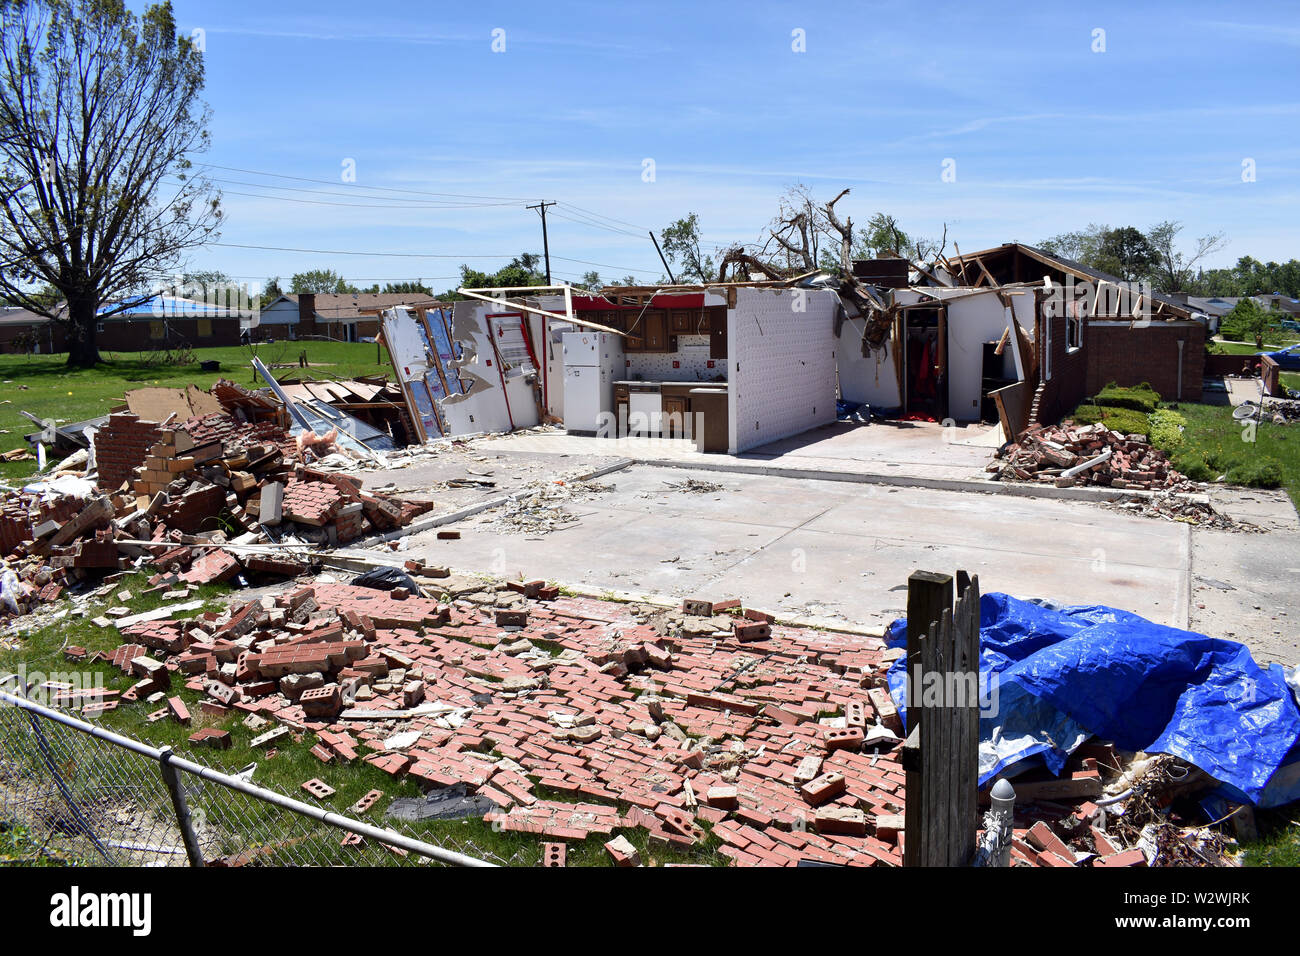 Tornado damage that occurred on Jun 15, 2019 in the Dayton, Ohio vicinity - Stock Image